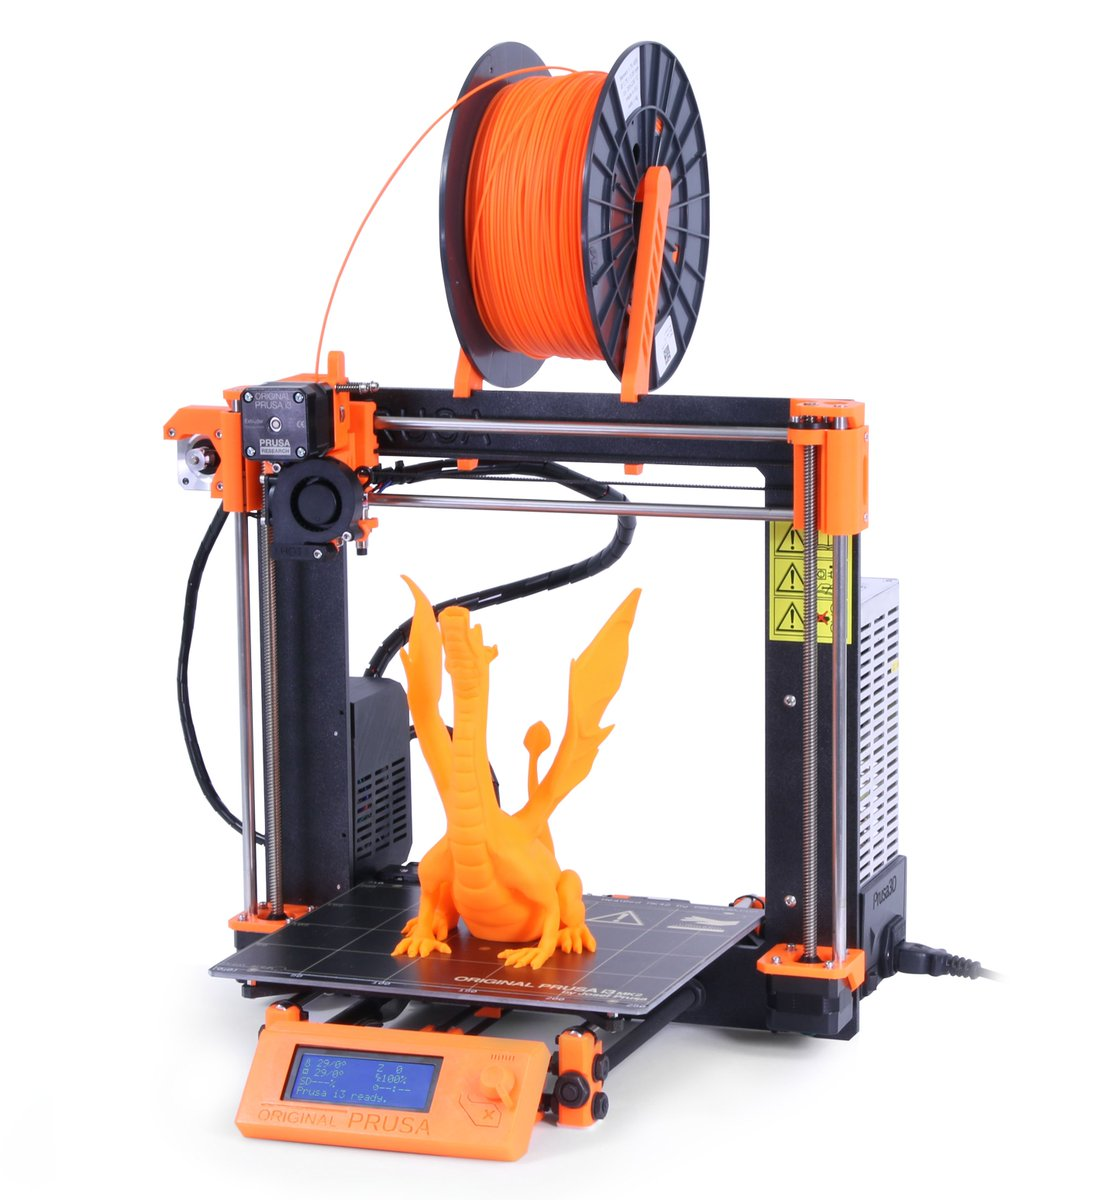 Reddit was faster :-D Original Prusa i3 MK2 is out! PLS RT and UPVOTE #RepRap #3dprinting https://t.co/LhH1MiJSog https://t.co/nJd1KkH1Ki